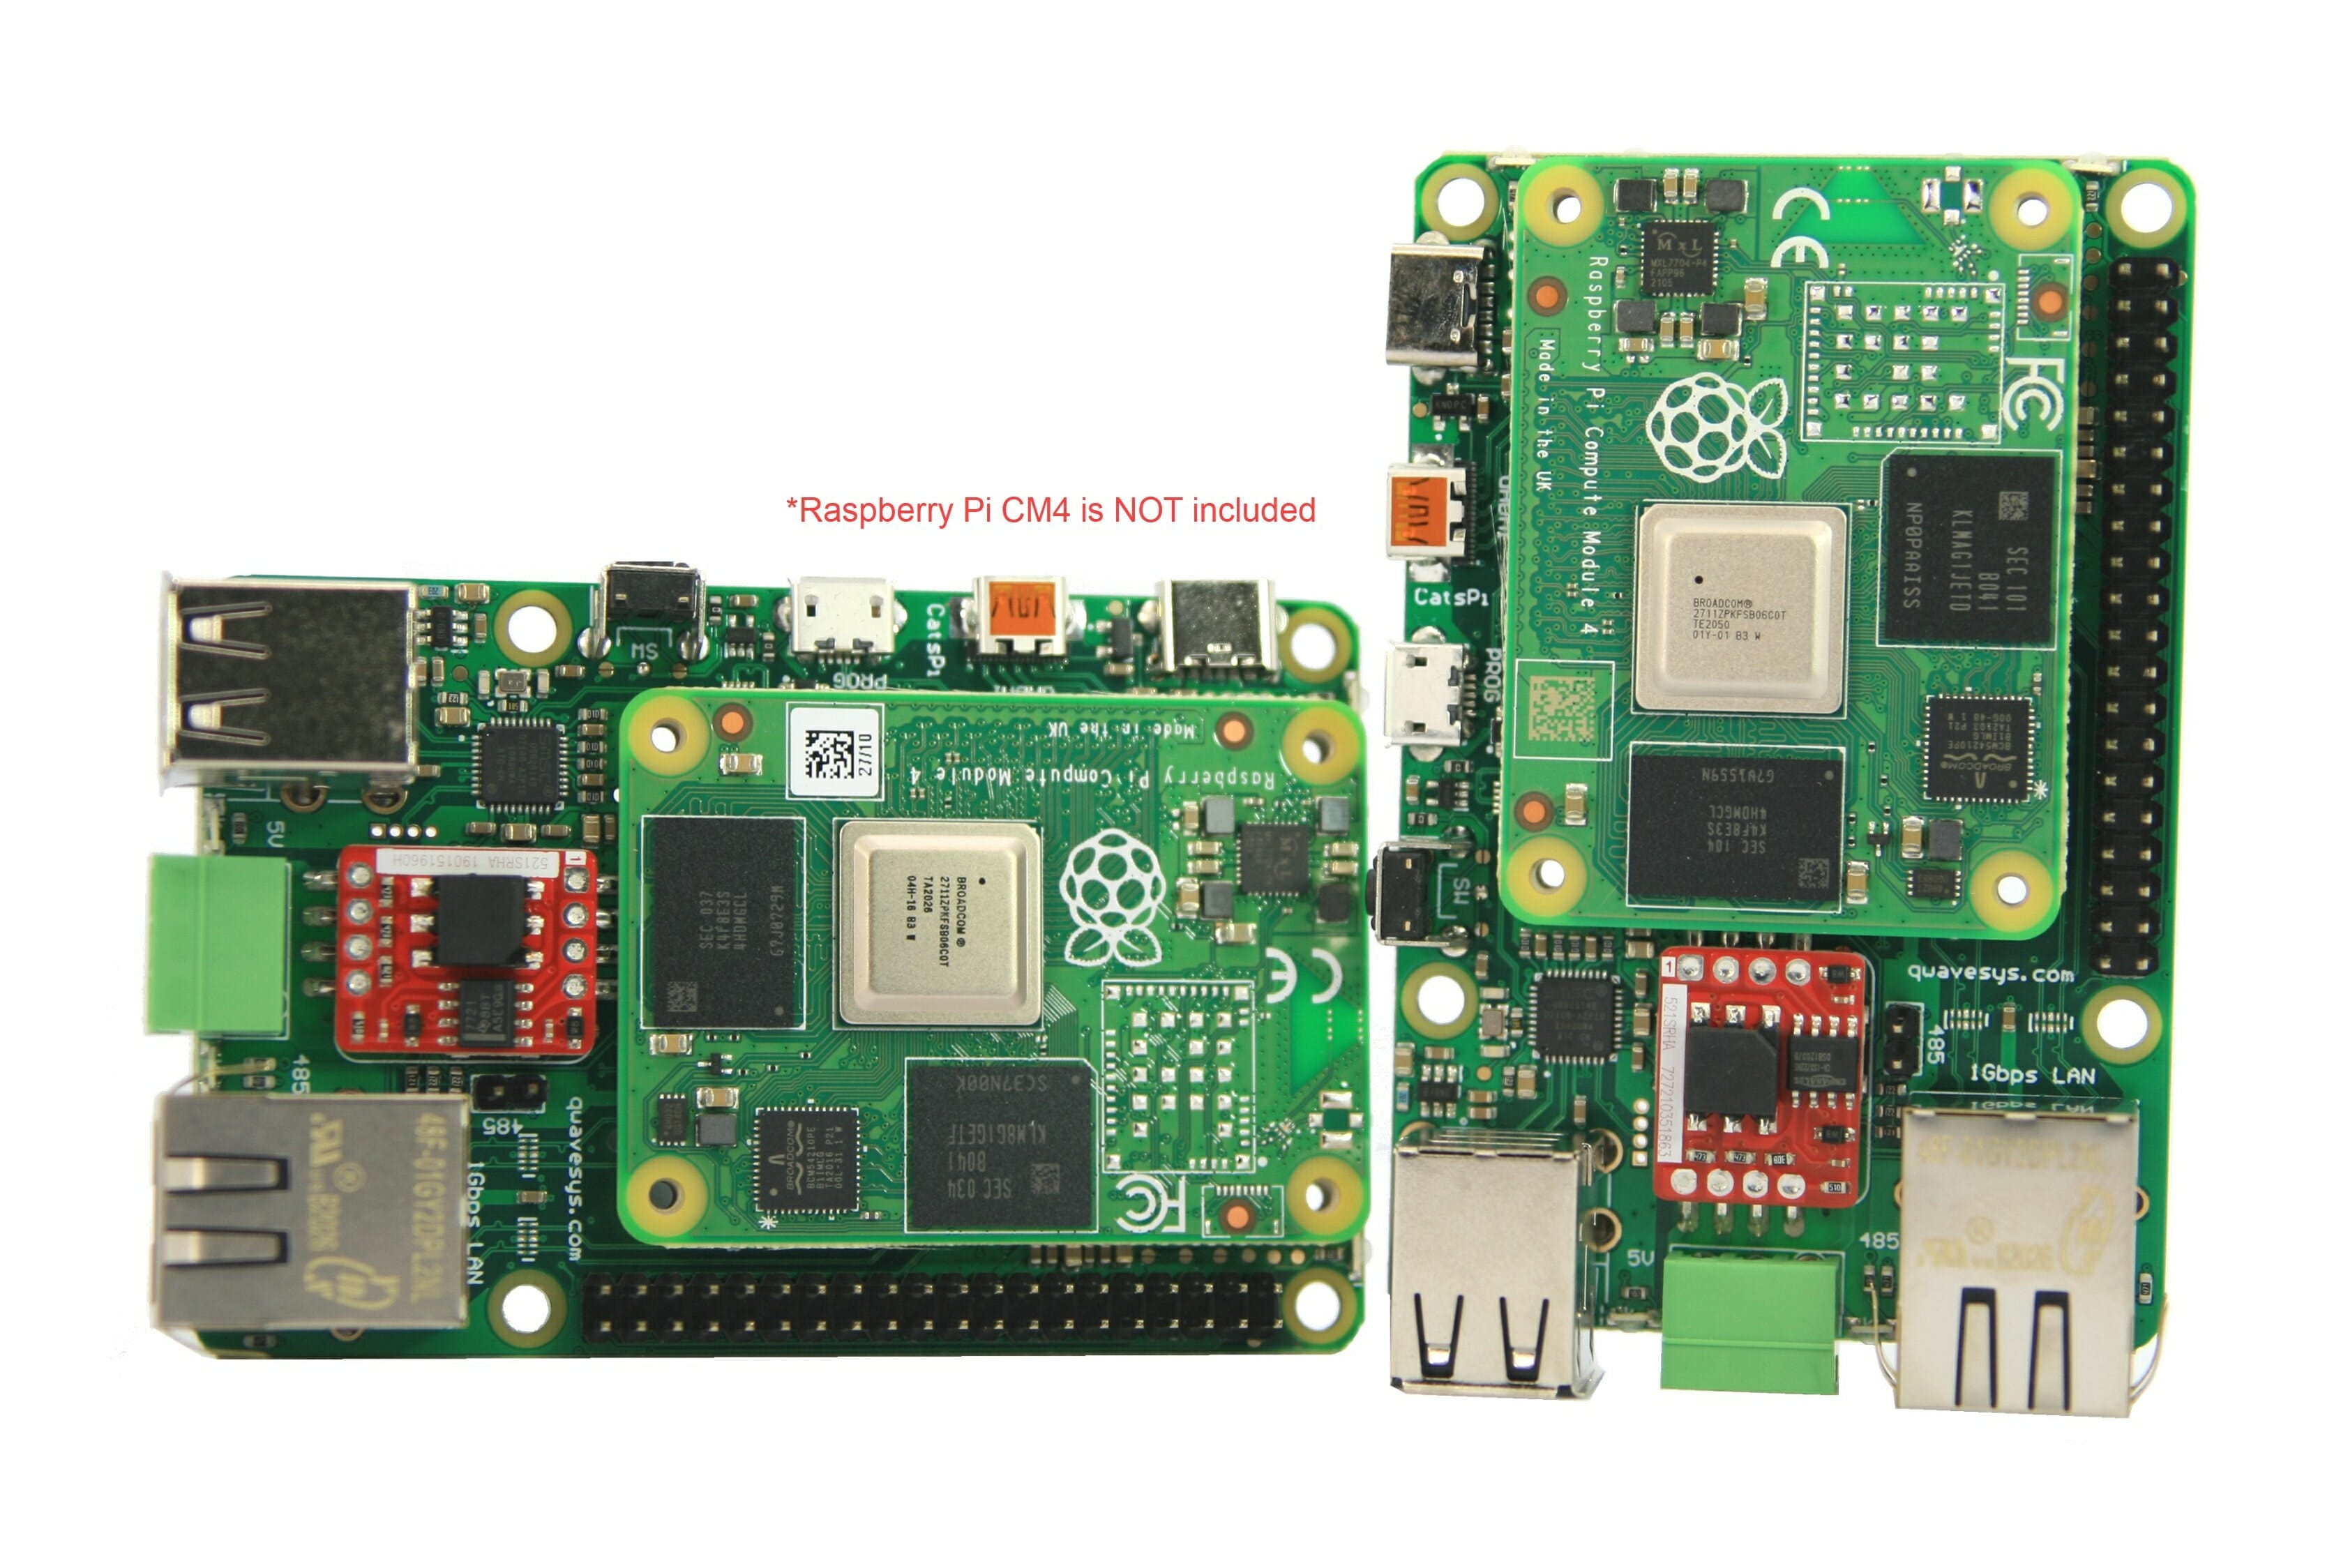 CatsPi Industrial Lite RPi CM4 carrier board features GbE, RS485, Watchdog MCU